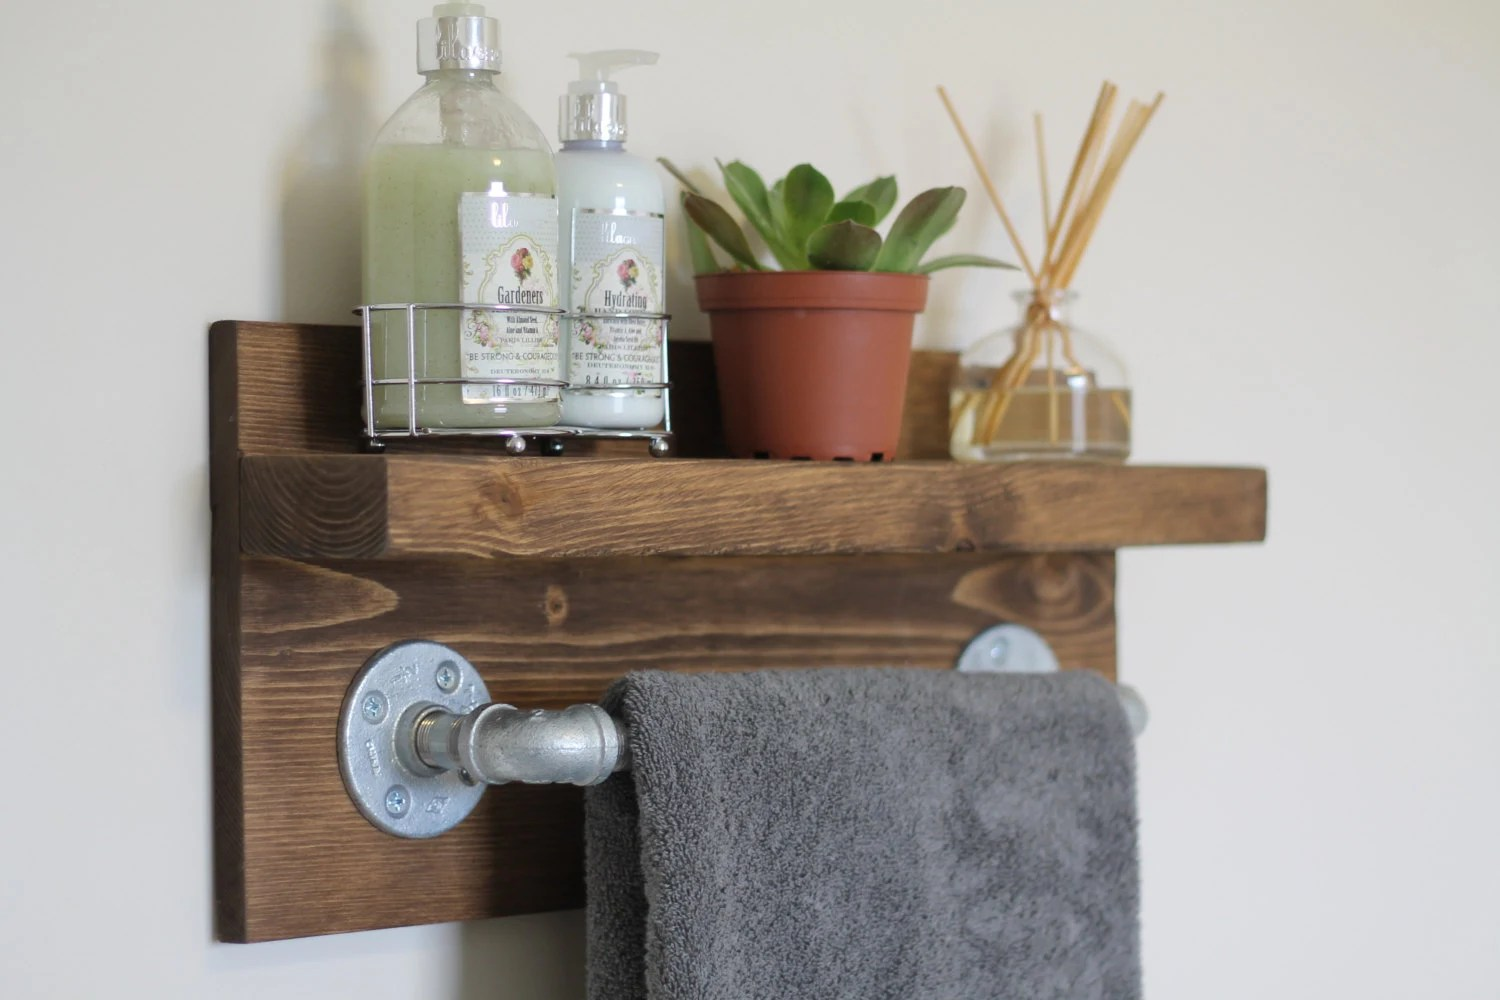 Fullsize Of Industrial Bathroom Shelf